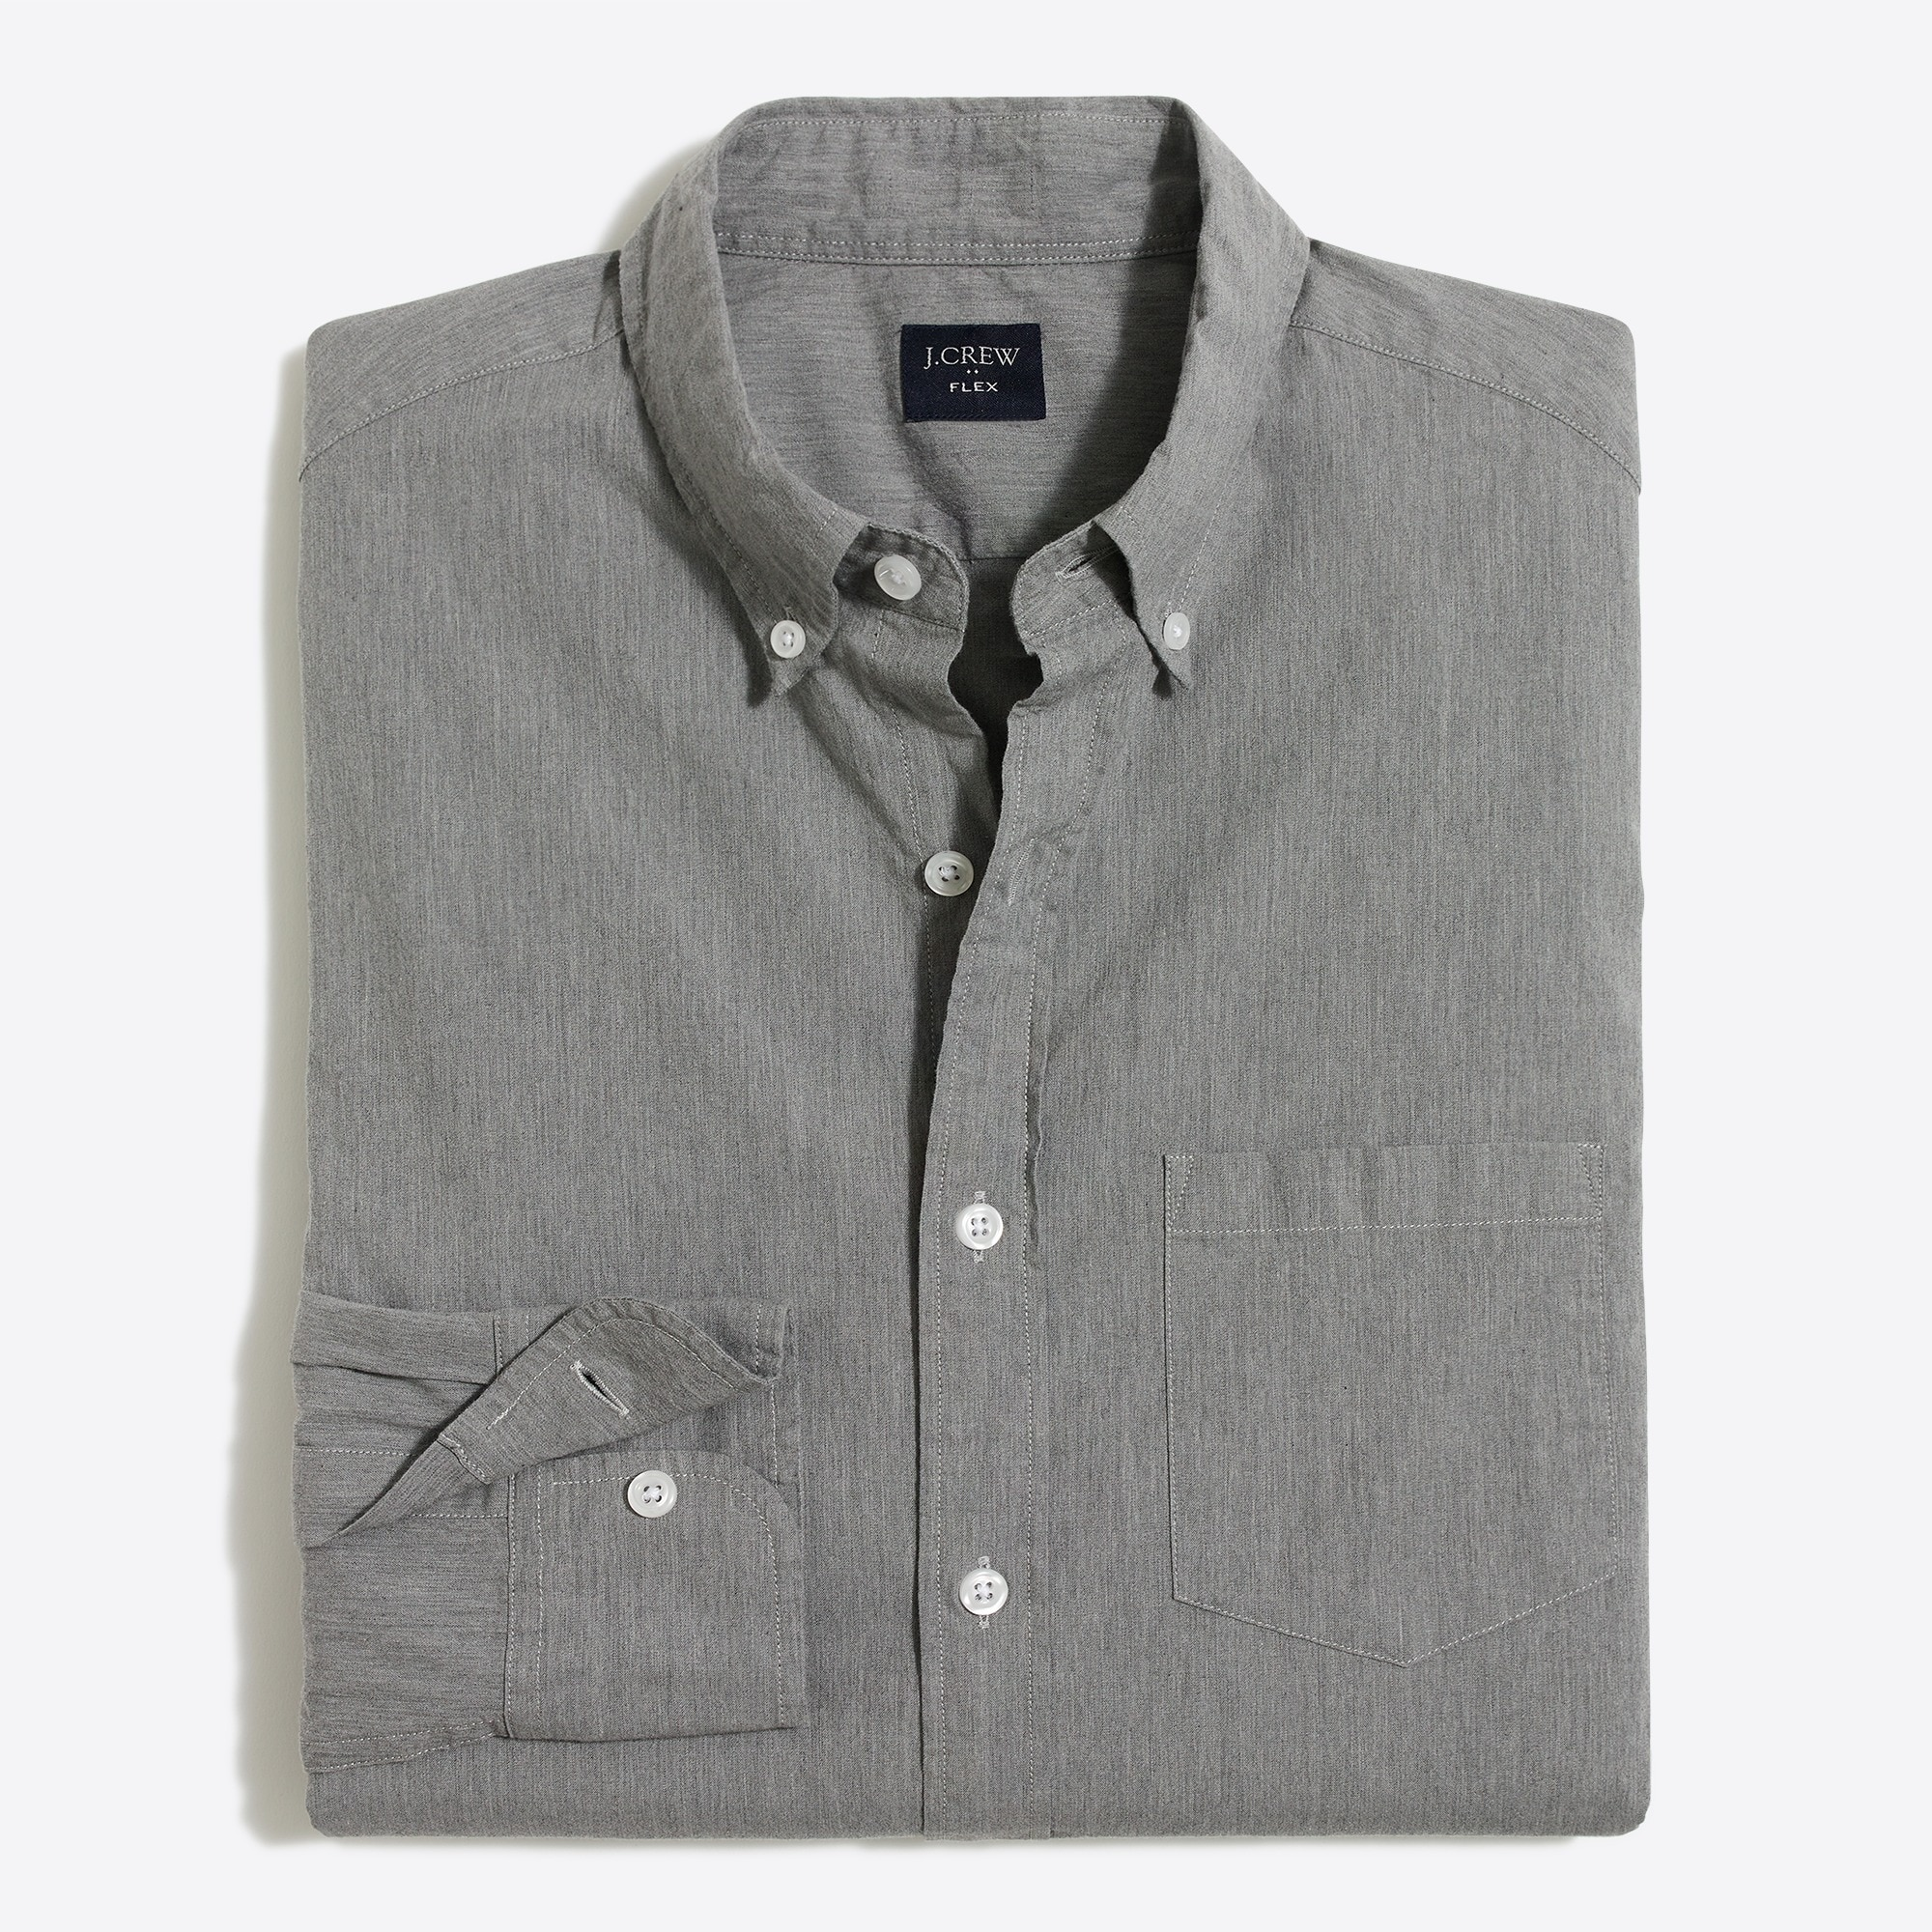 mens J.Crew Mercantile Slim-fit flex heather washed shirt